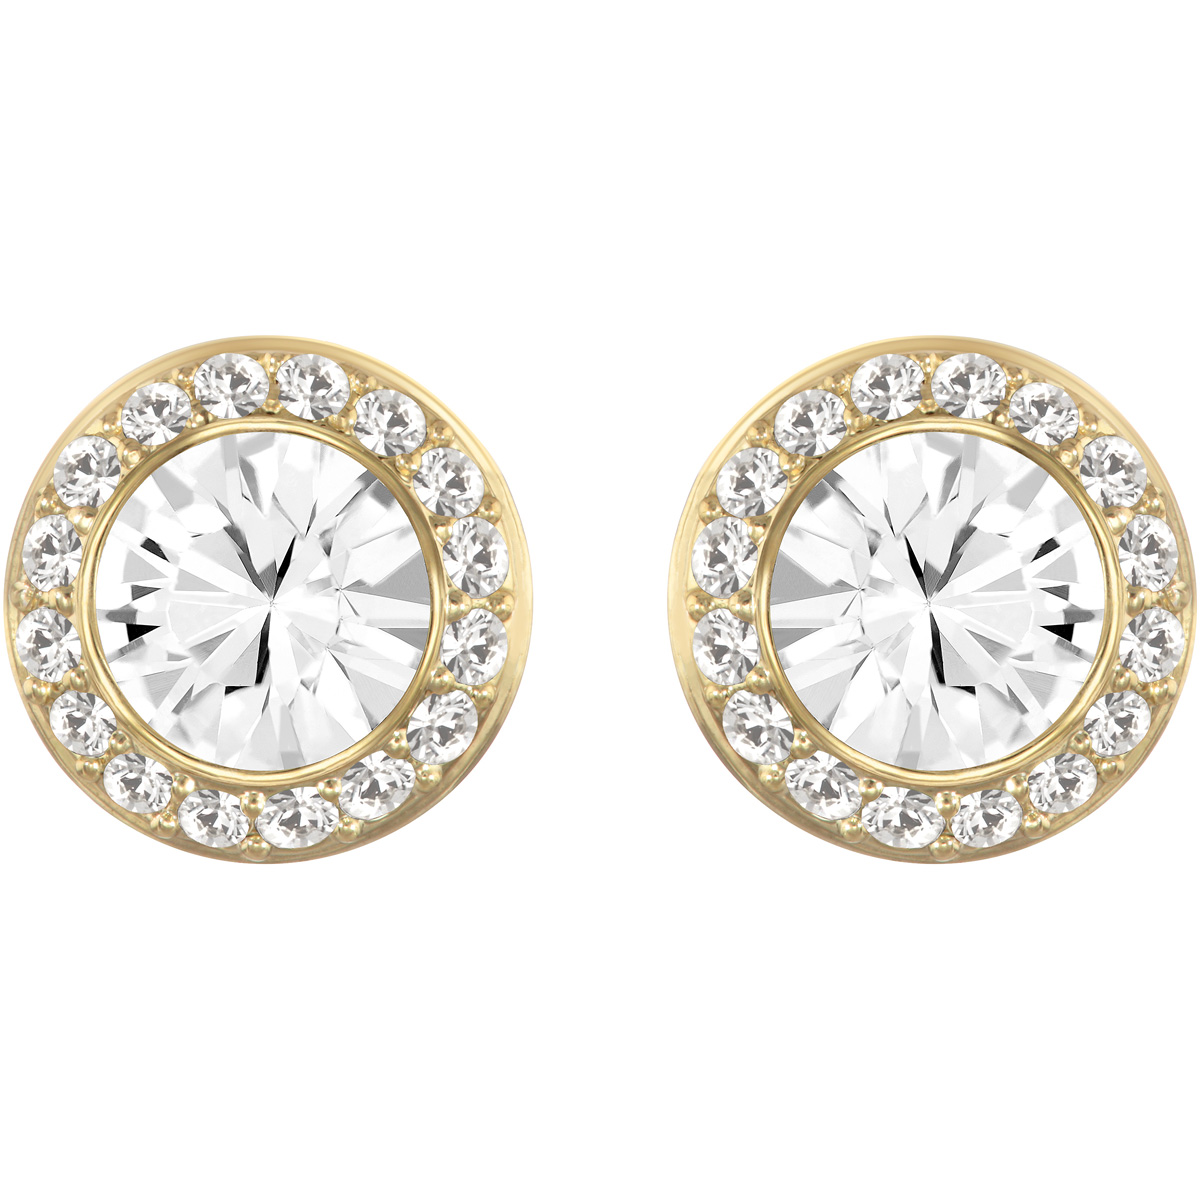 Swarovski Angelic Stud Pierced Earrings, White, Gold